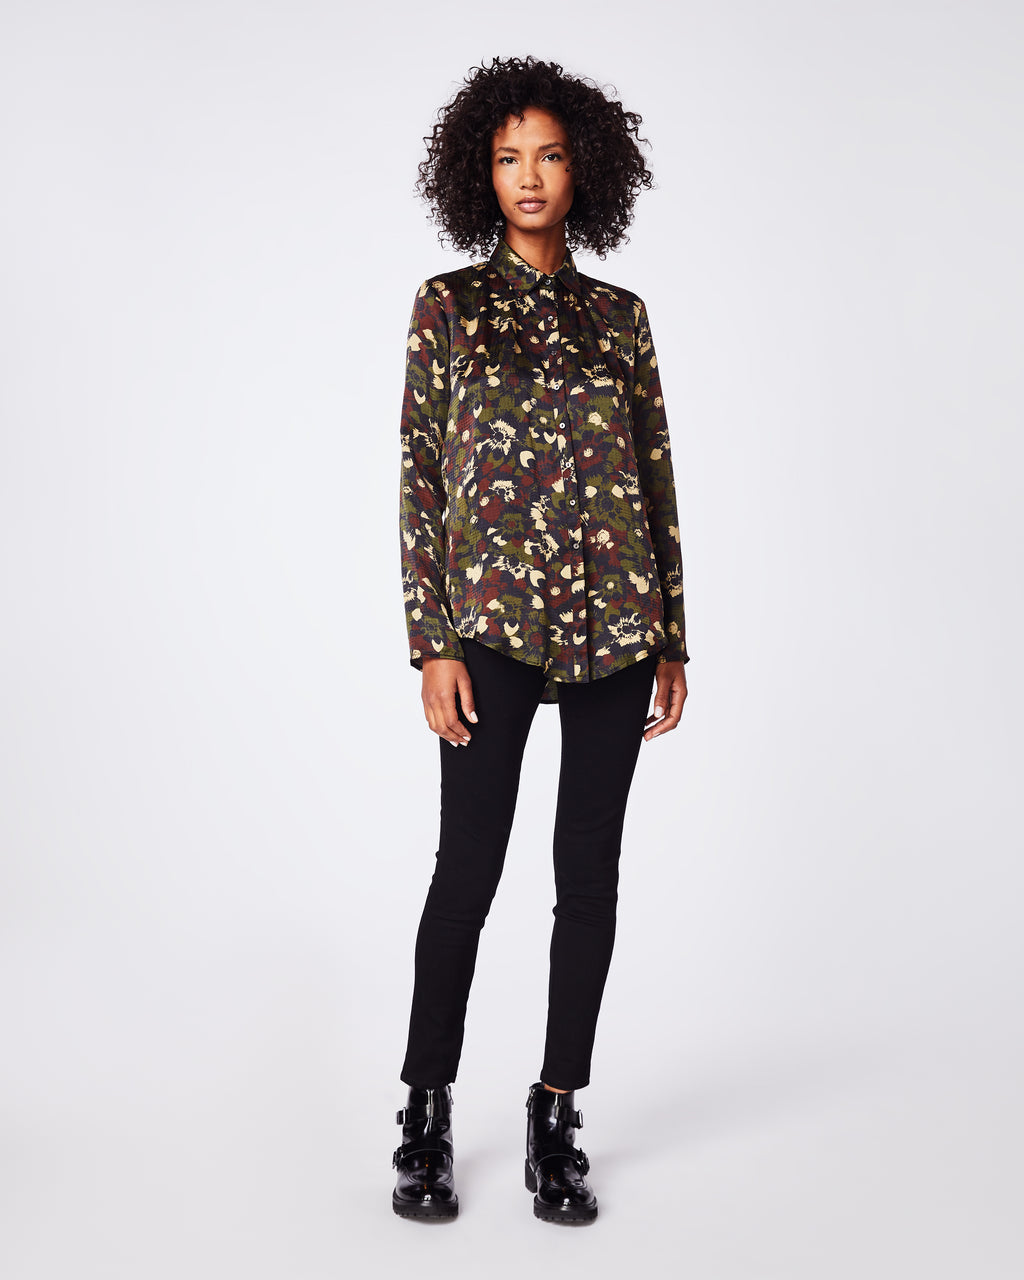 BK10265 - CAMO FLORAL RIPSTOP BOYFRIEND SHIRT - tops - blouses - In a textured silk, this boyfriend button up blouse can be easily paired with jeans for a casual look. Final Sale